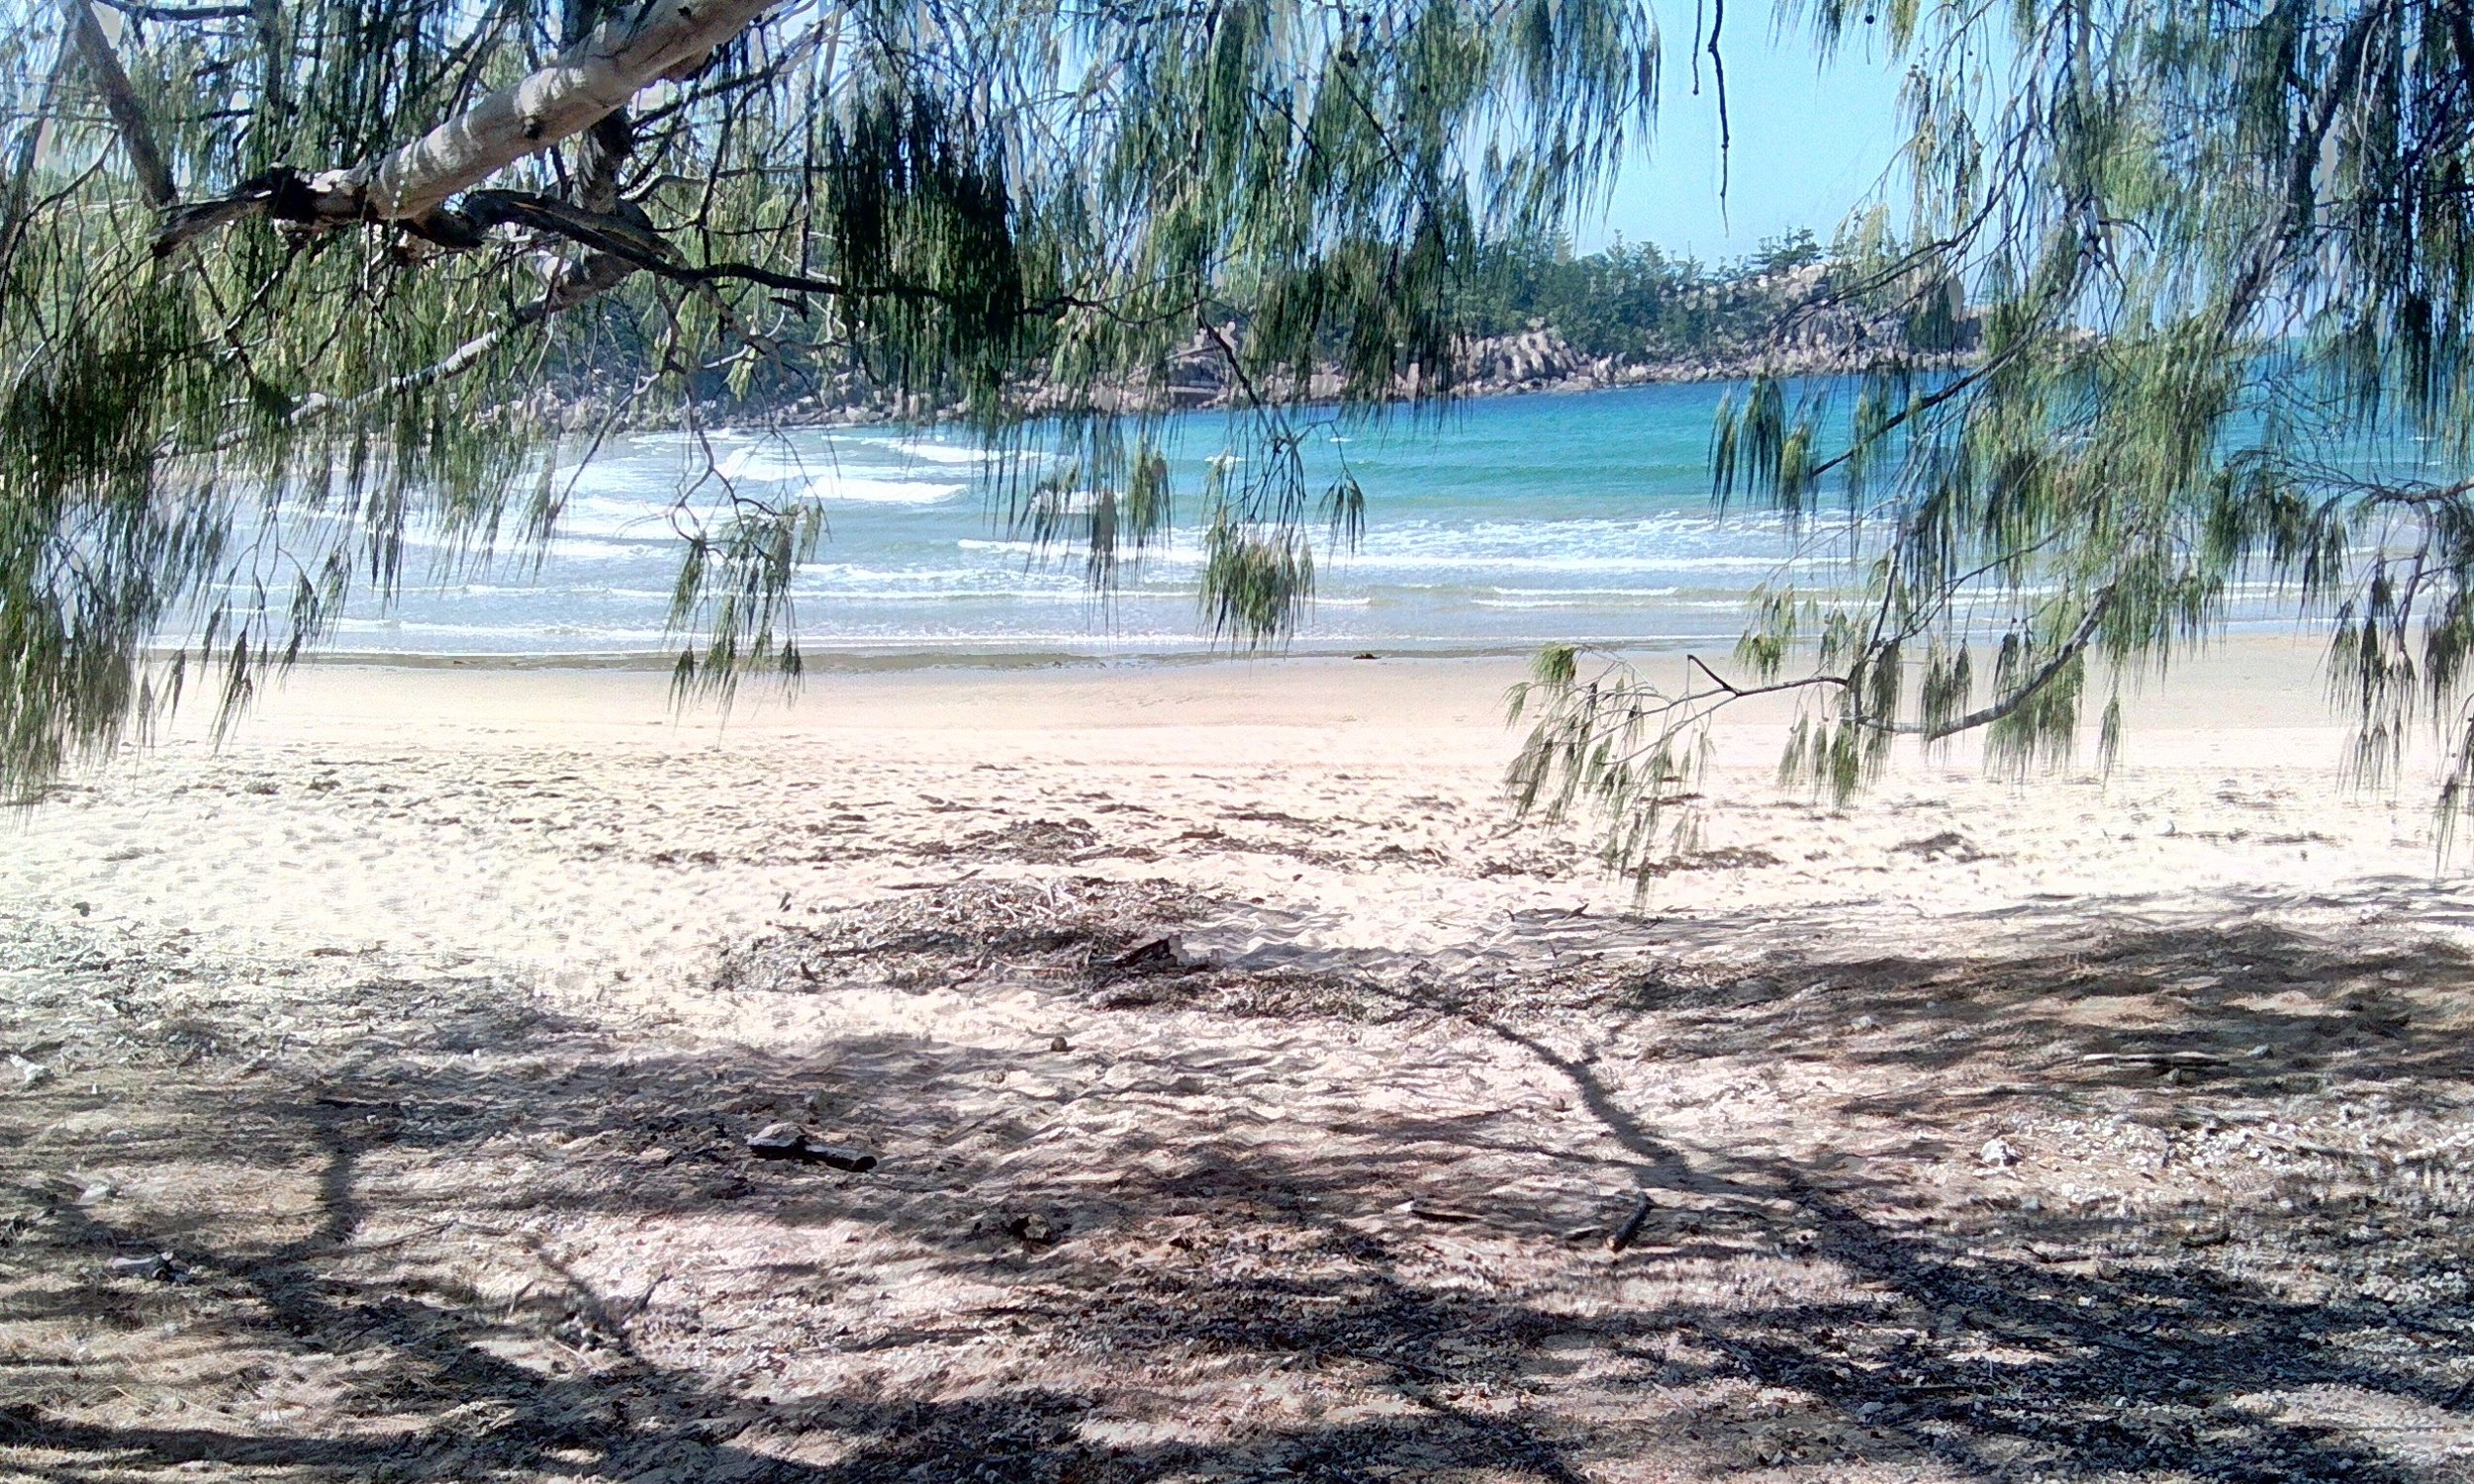 Magnetic Island's beaches are world class, and often empty